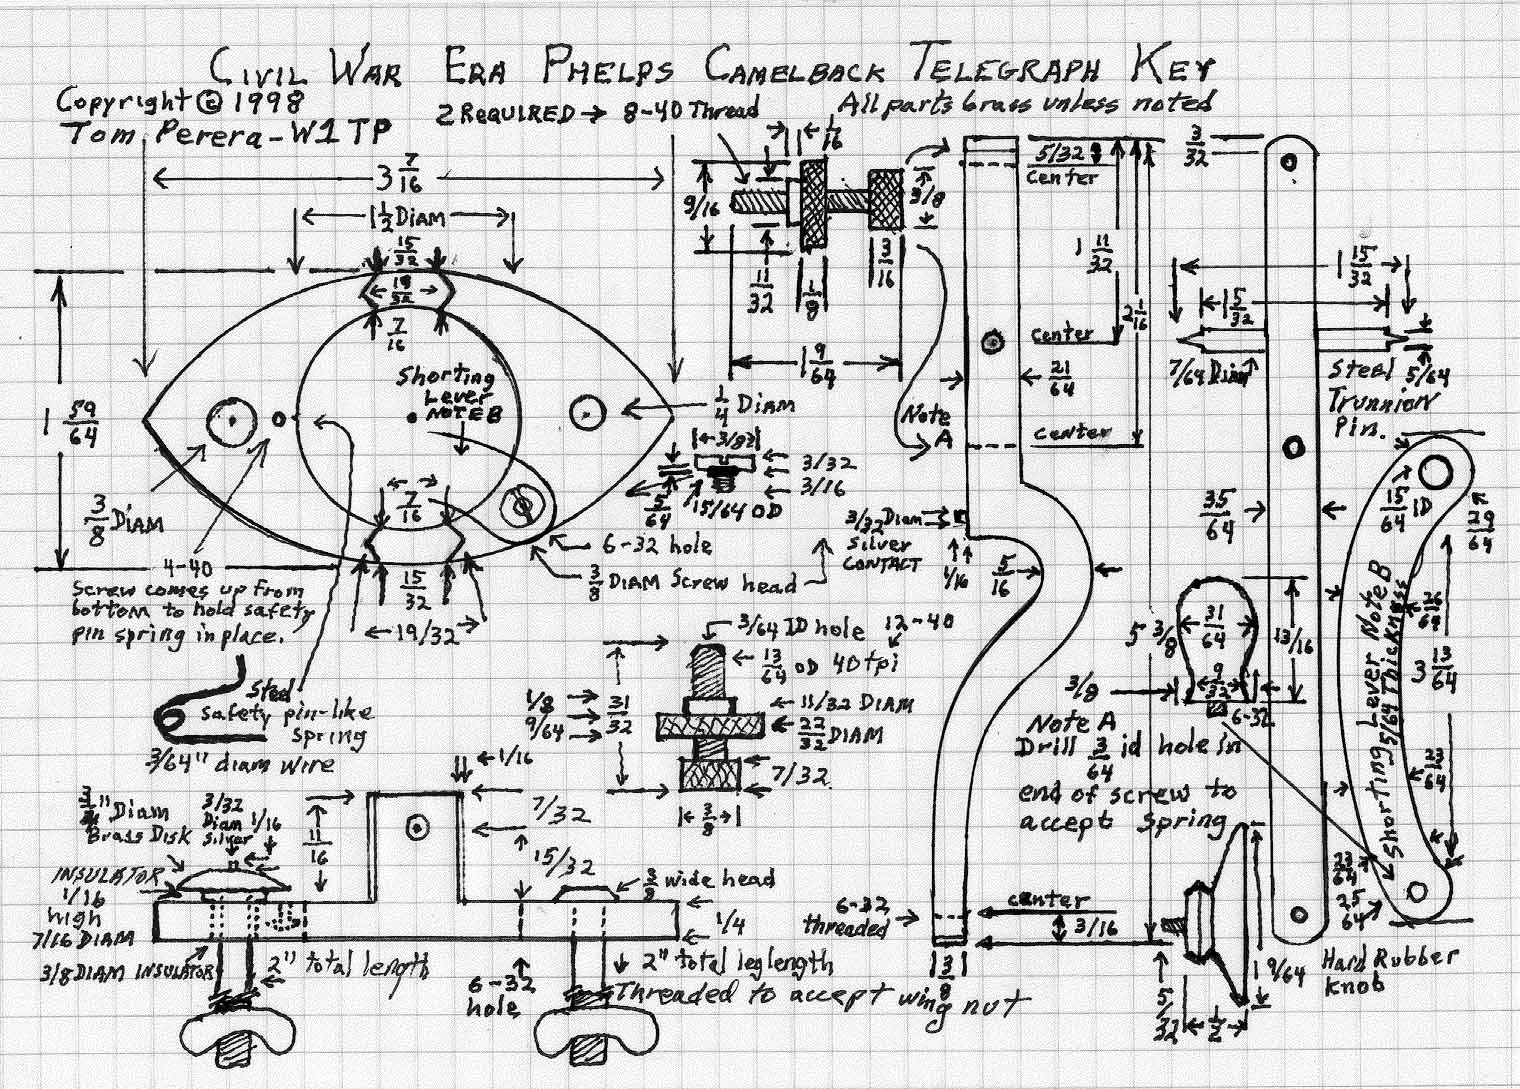 WRG-5771] 5 Ohm Telegraph Wiring Diagram on morse telegraph color, morse code telegraph key, morse telegraph tape, morse telegraph demonstration, morse telegraph model, morse telegraph drawing, morse telegraph science,